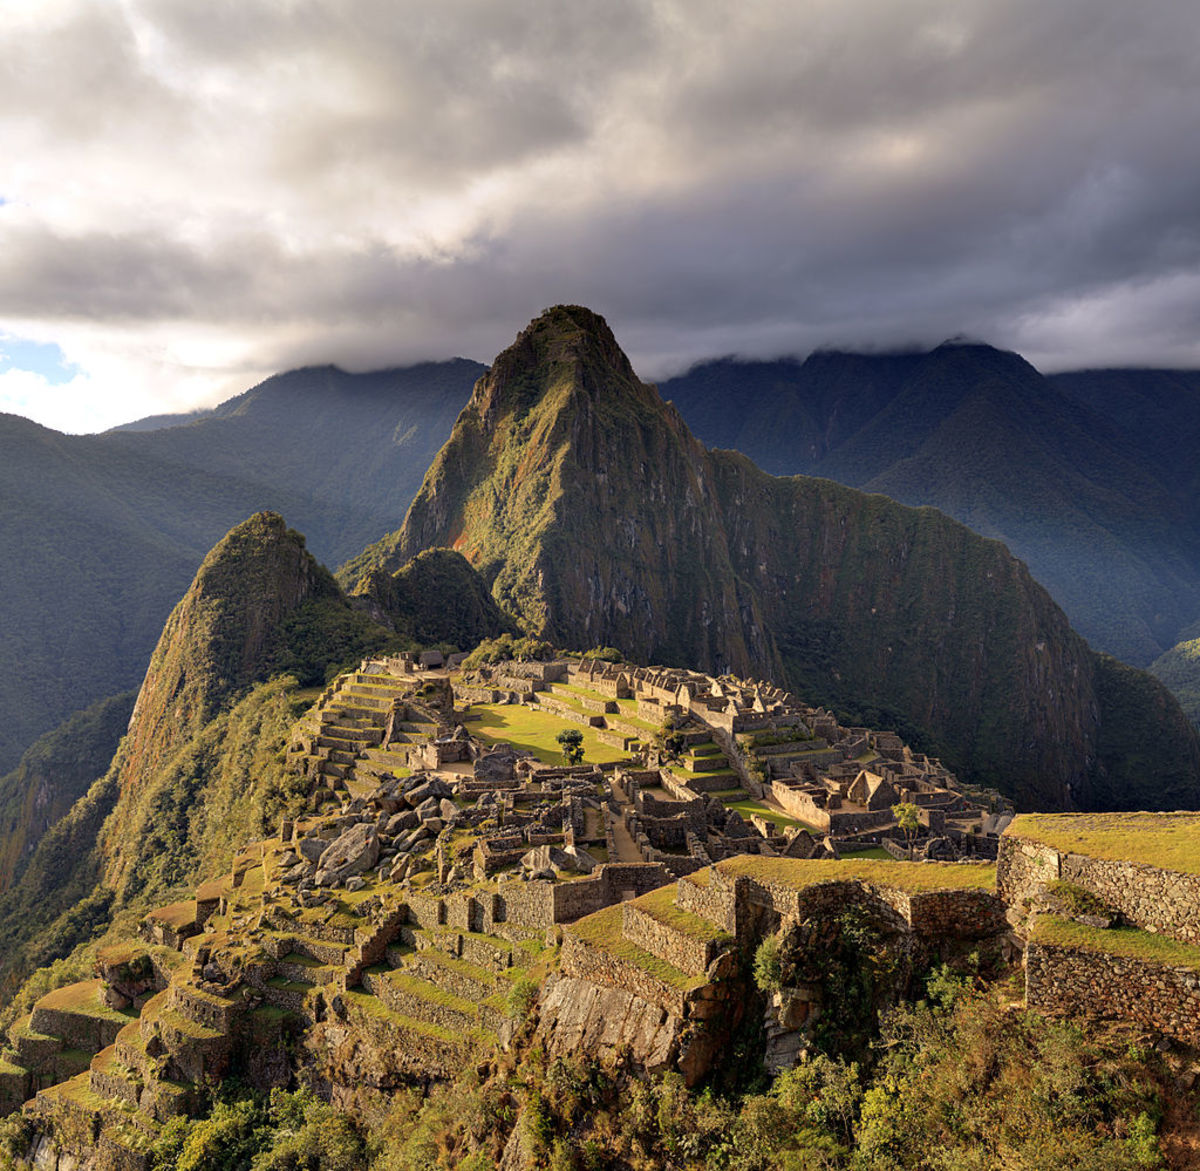 Machu Picchu a fifteenth- century Inca citadel situated on a mountain 7972 feet above sea level.